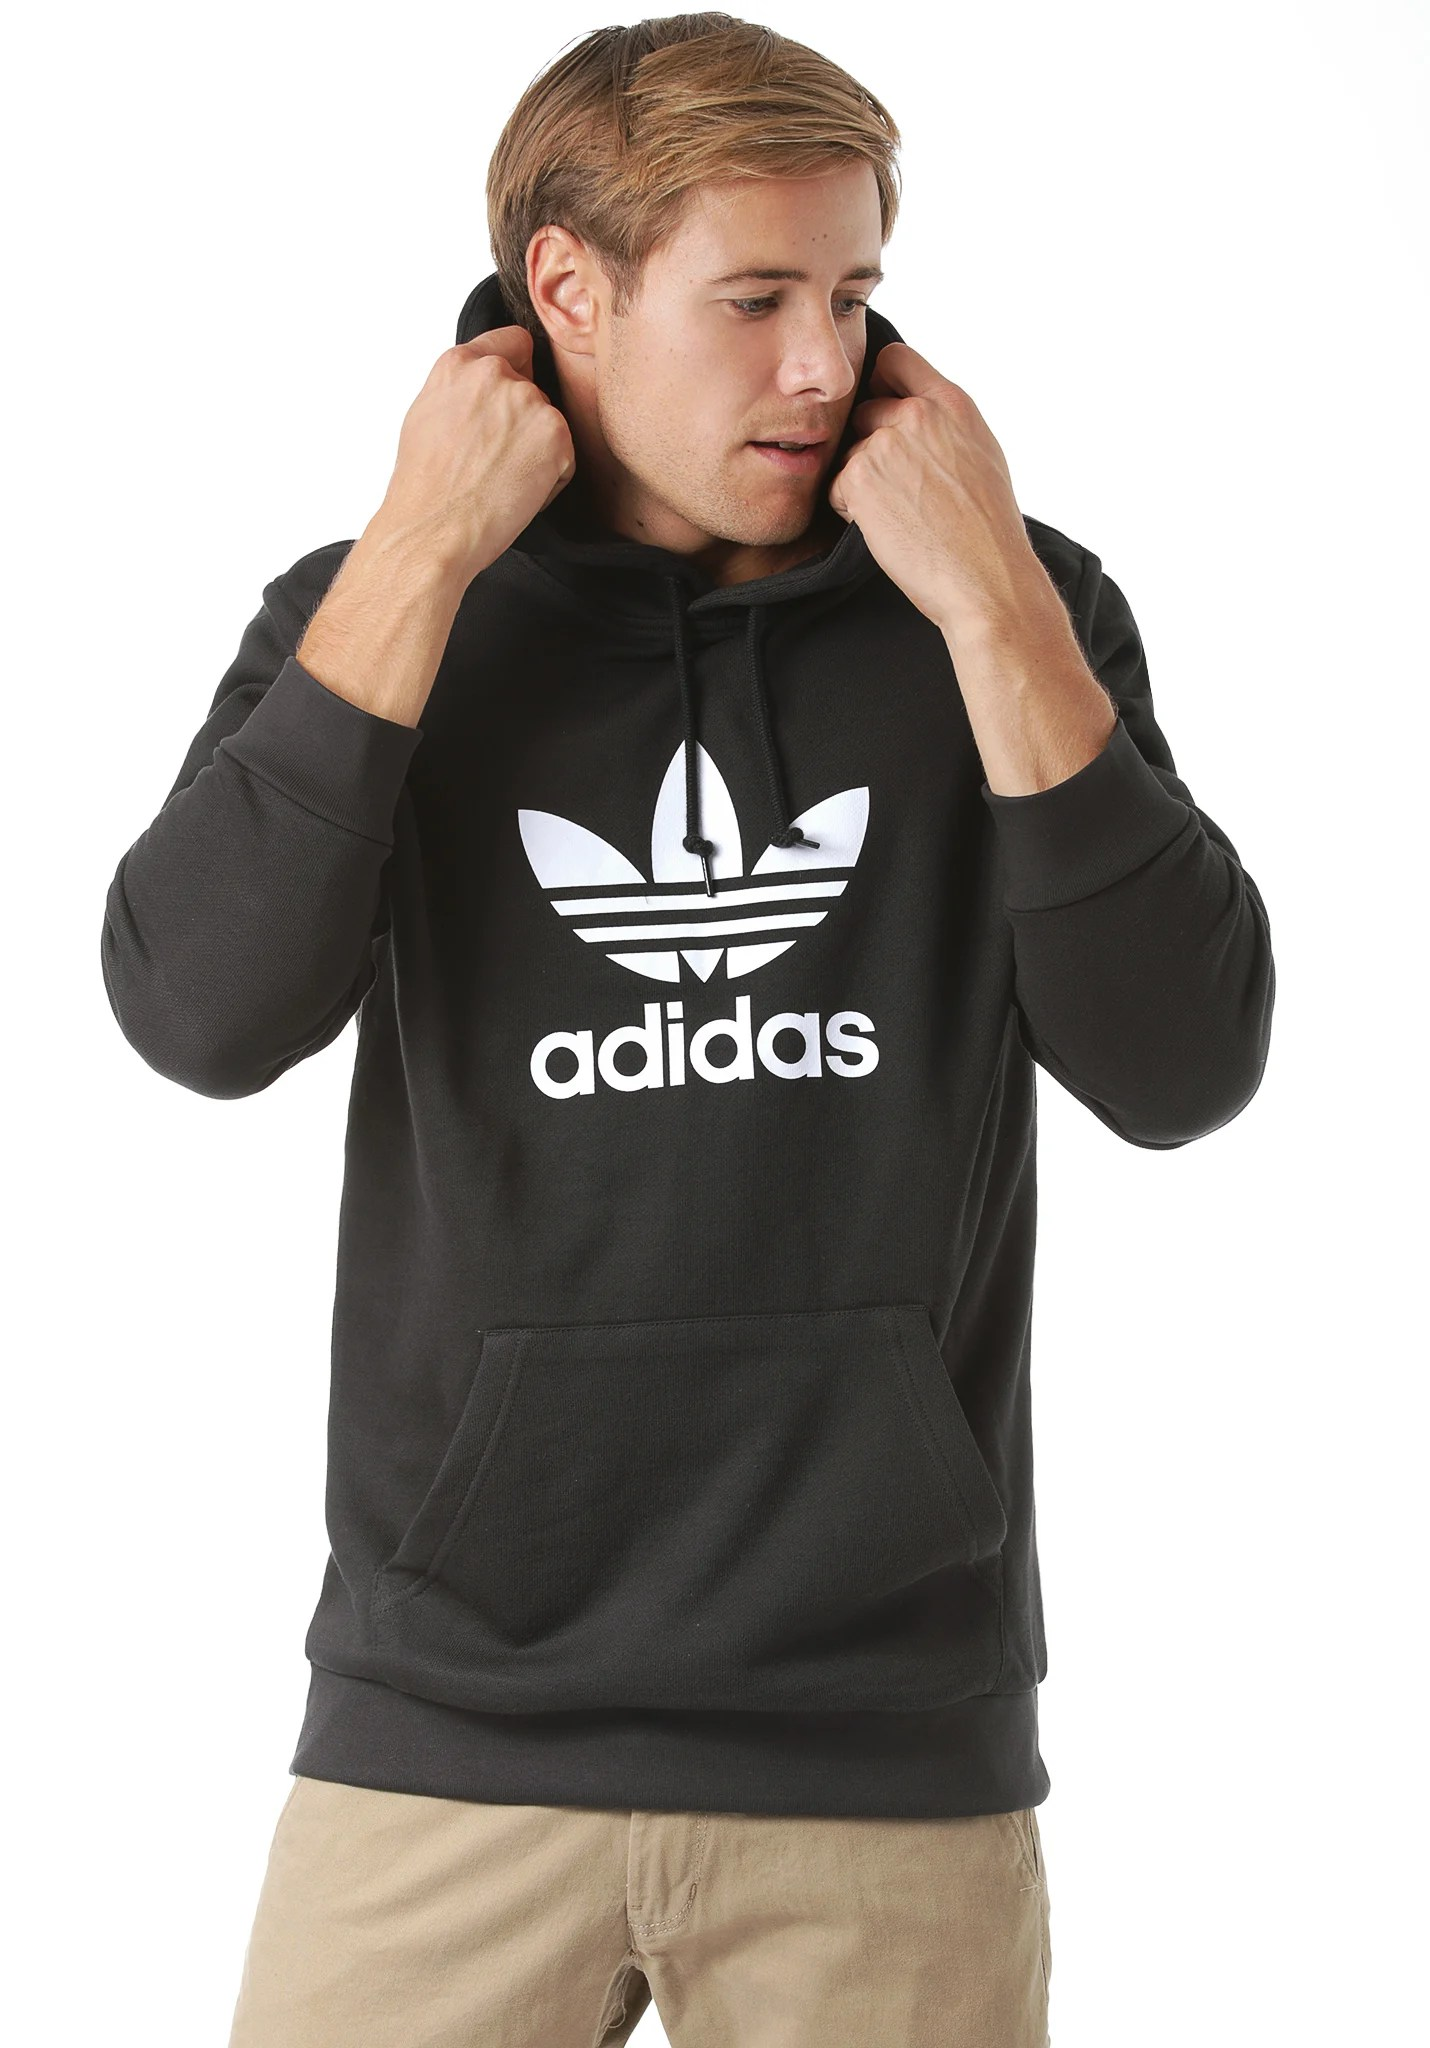 Adidas Sweatshirt Schwarz Herren Adidas Originals Trefoil Hooded Sweatshirt For Men Black